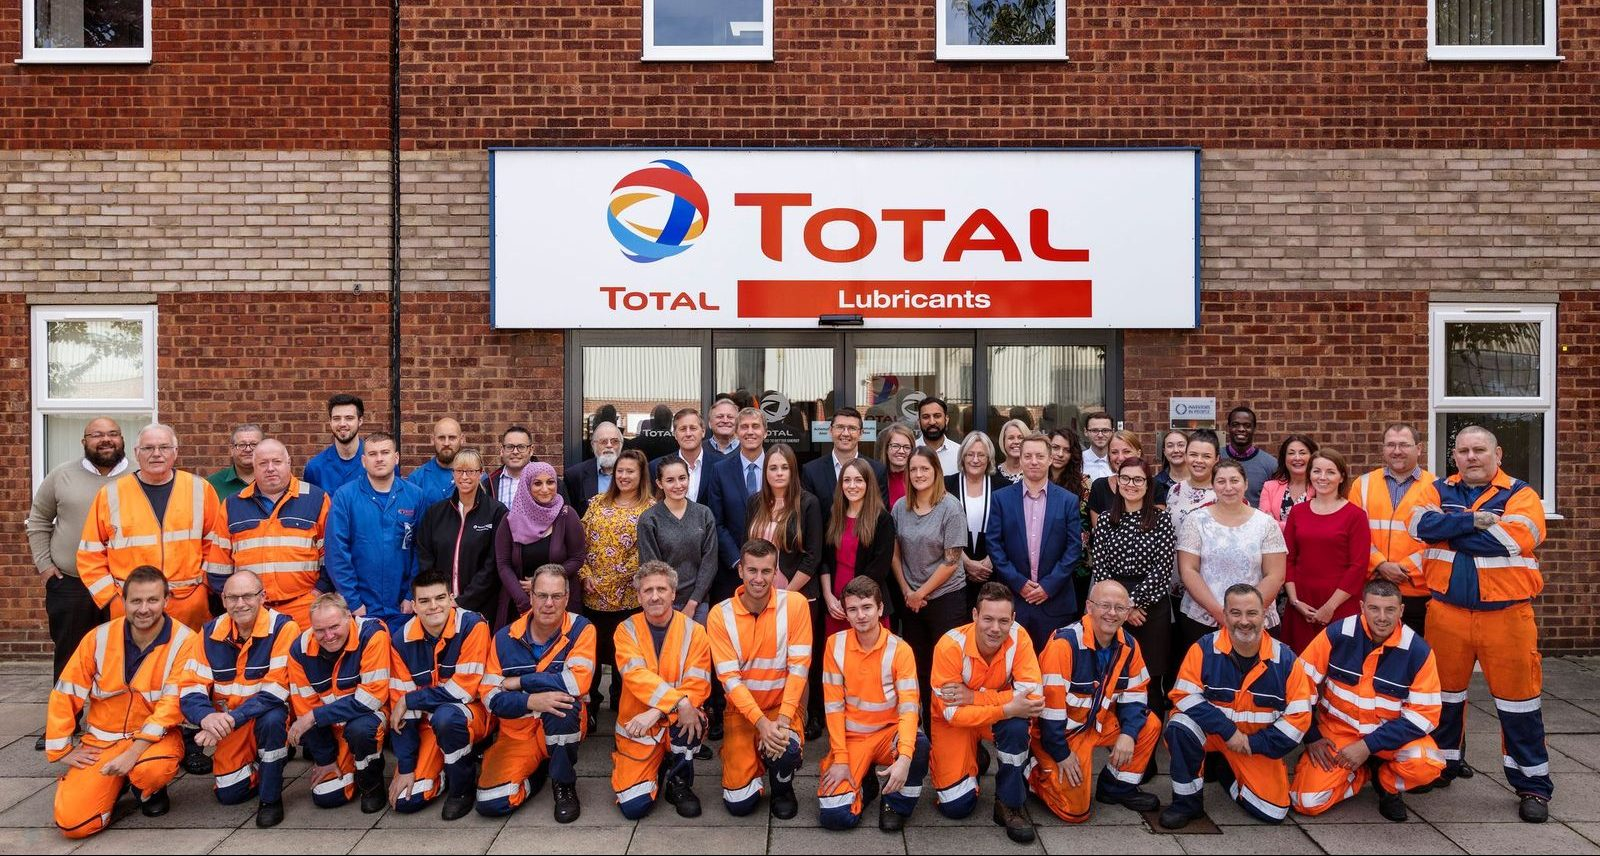 Total Lubricants UK team 2018 Image: Total Lubricants in UK